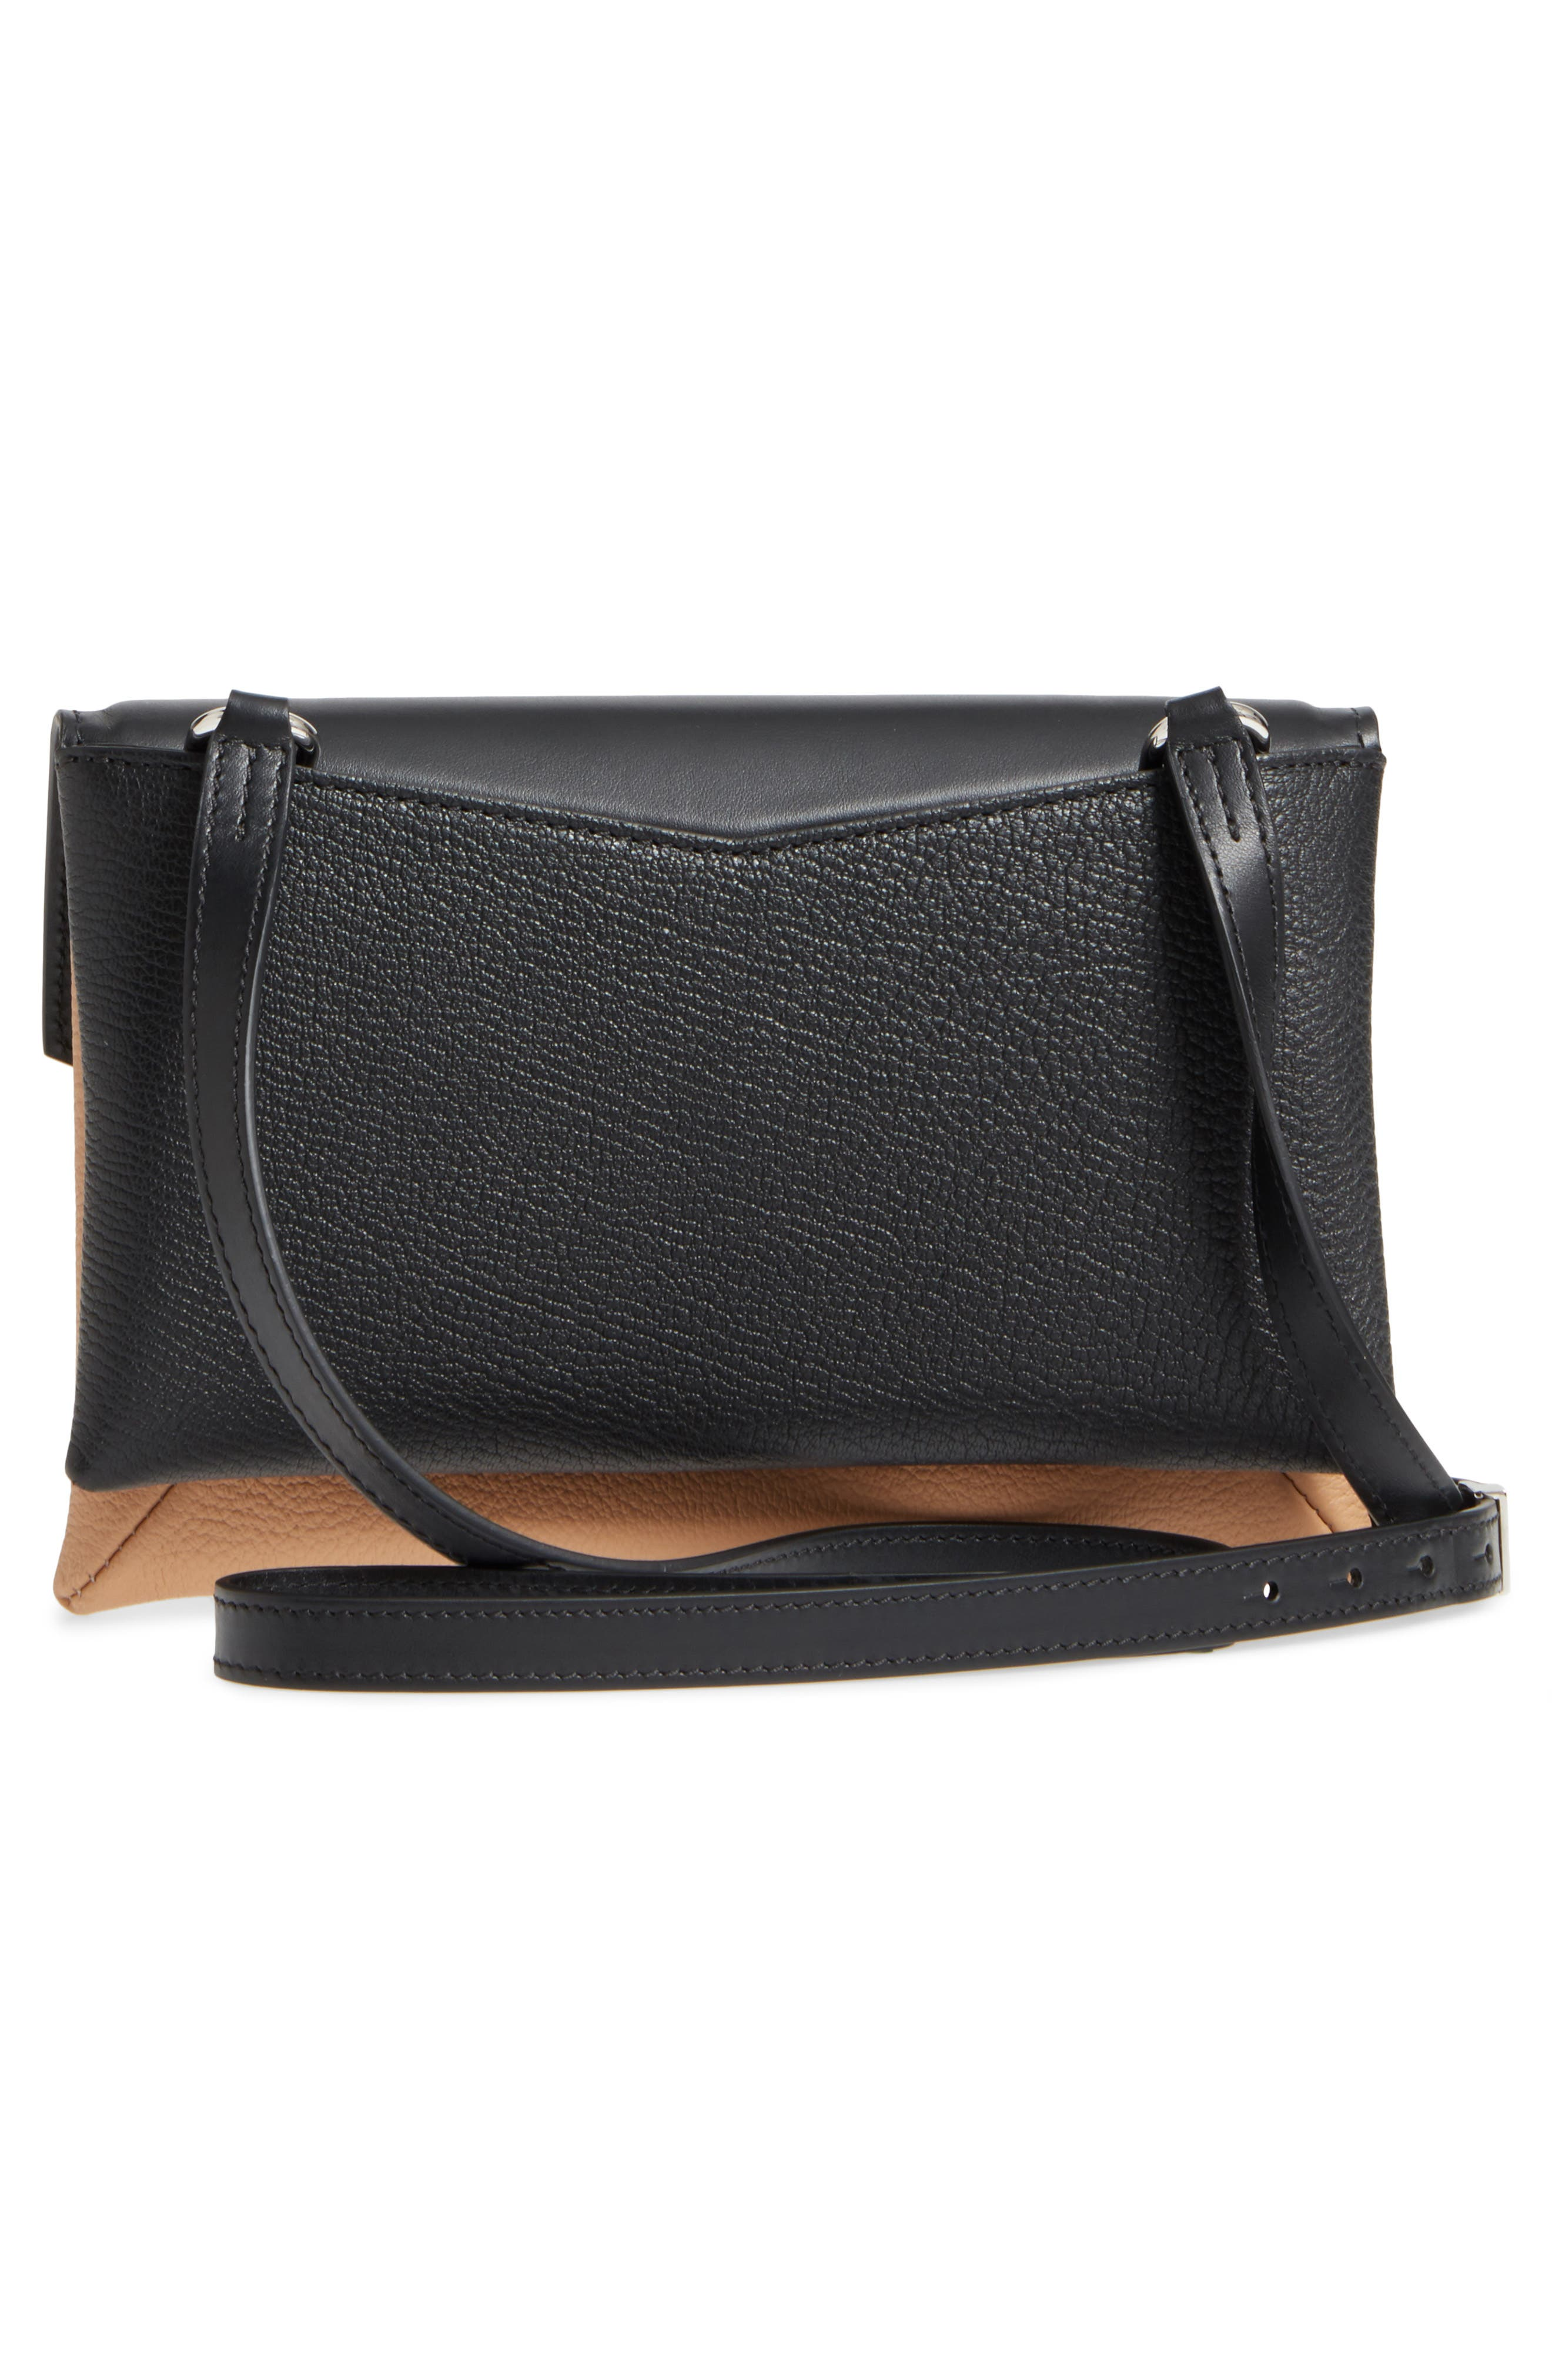 Duetto Tricolor Leather Flap Crossbody Bag,                             Alternate thumbnail 3, color,                             270